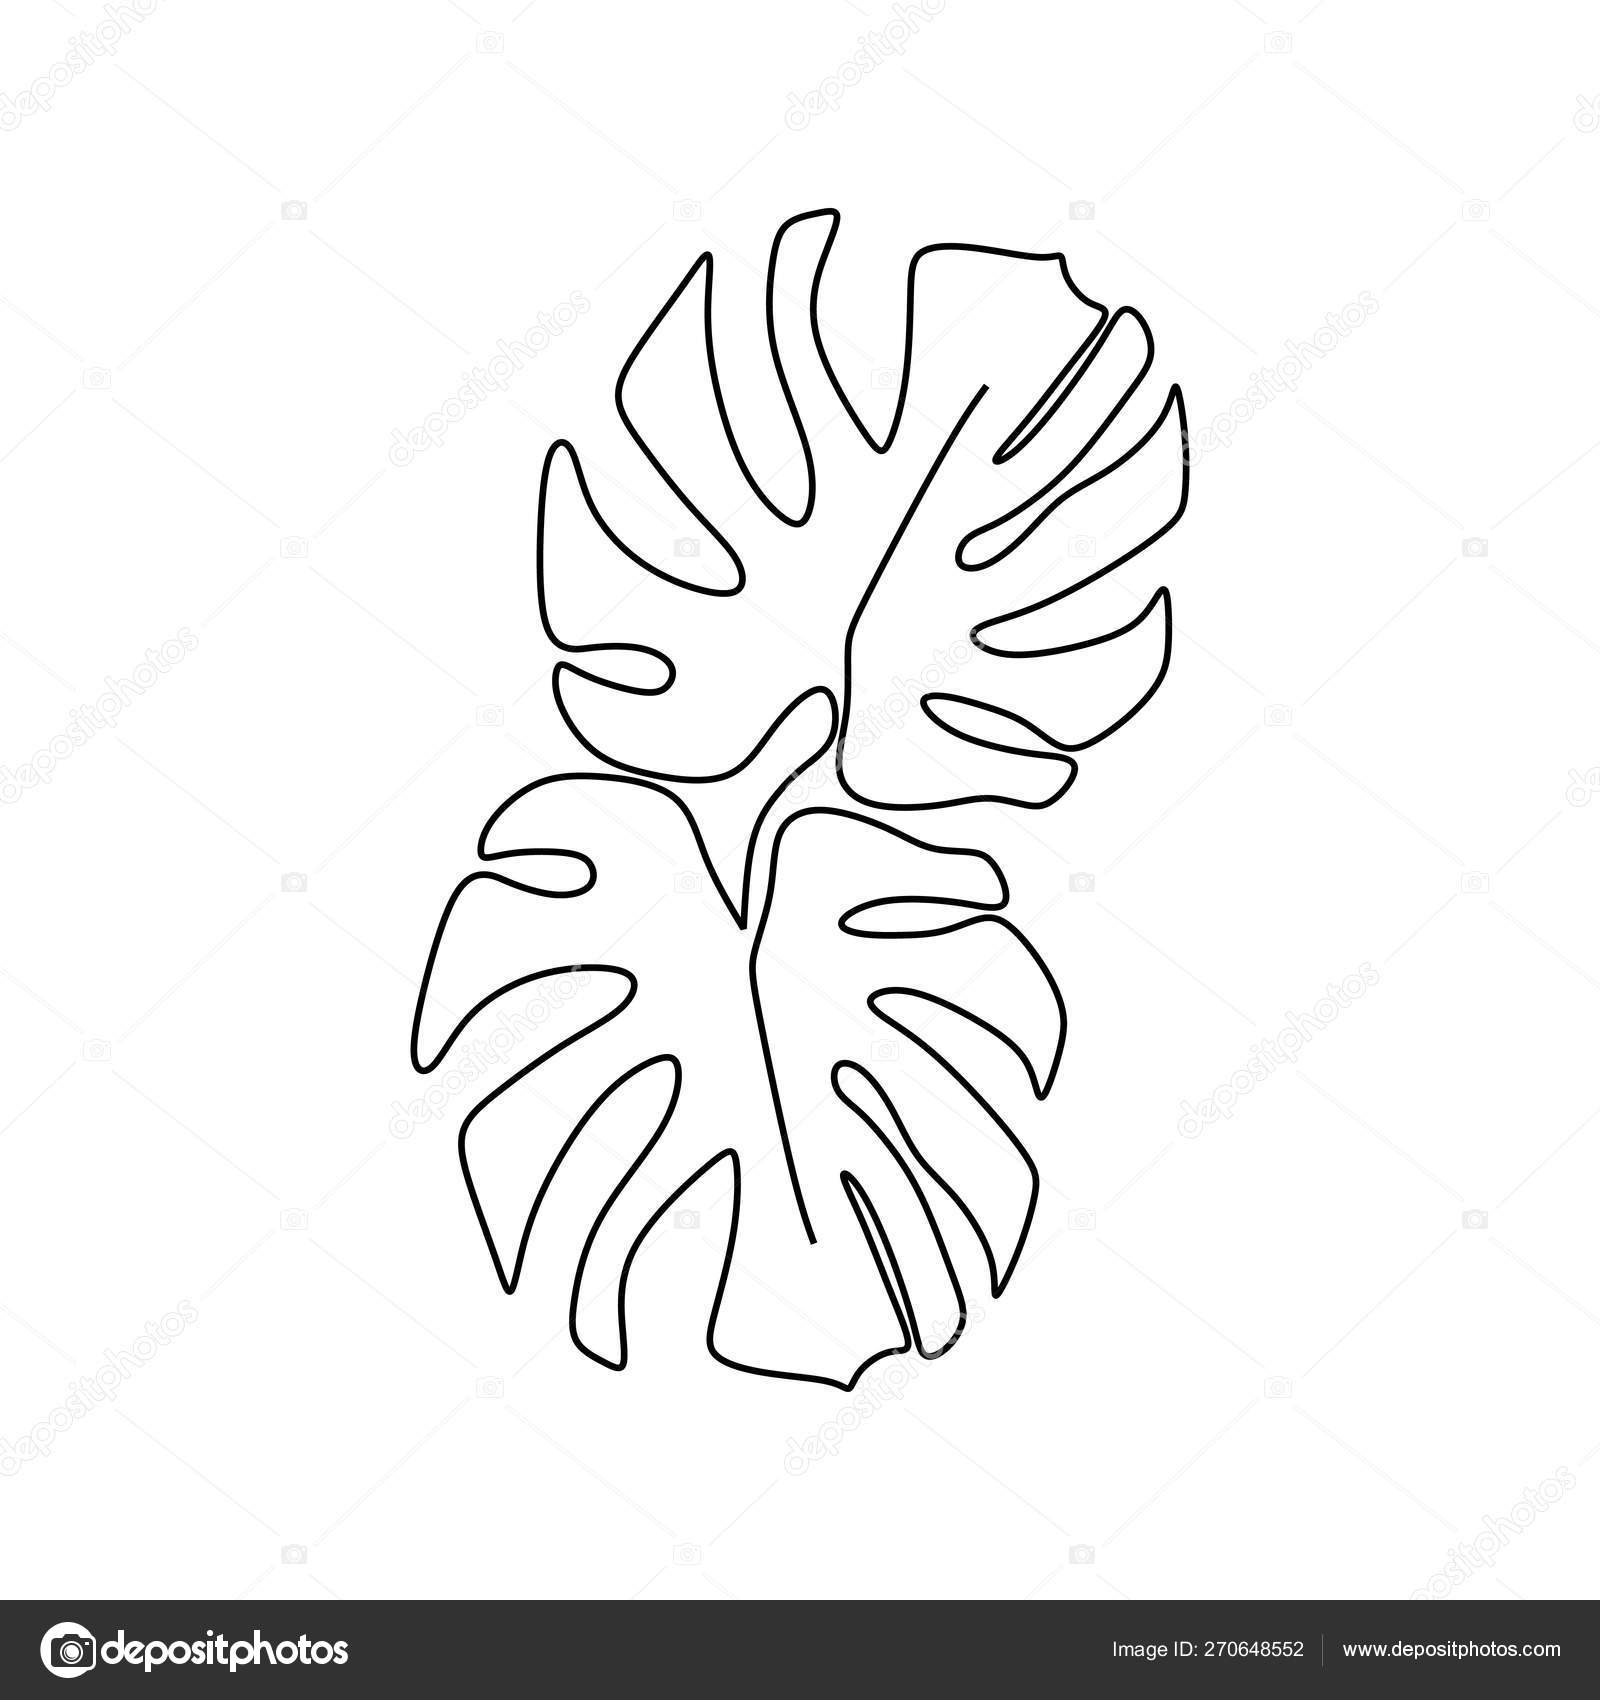 Monstera Delicosa Plant Leaves Continuous One Line Drawing Minimalist Design Simple Minimalism Style On White Background Vector Image By C Ngupakarti Vector Stock 270648552